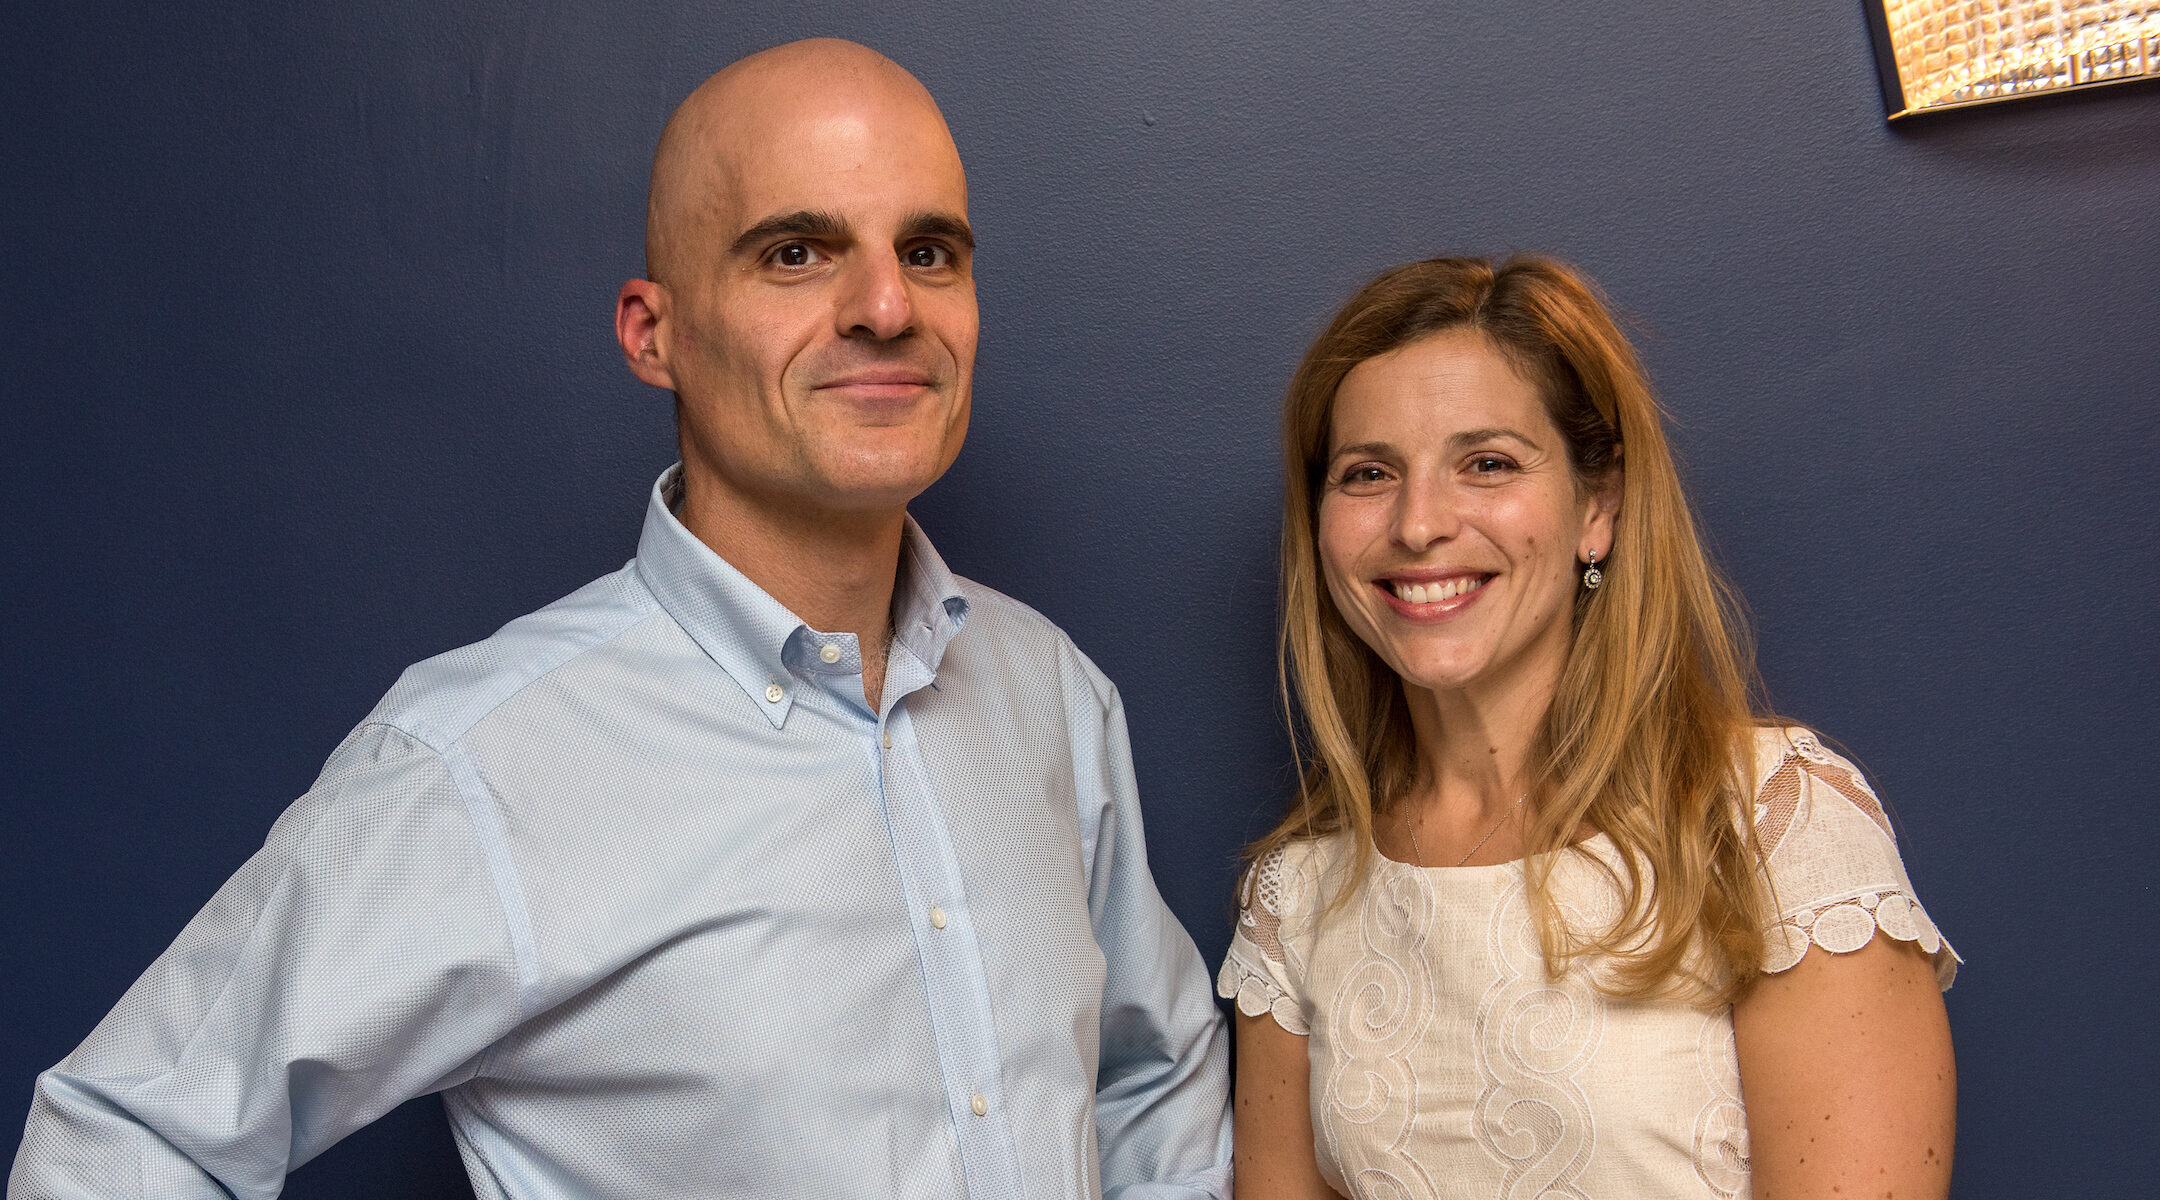 Mark and Erica Gerson